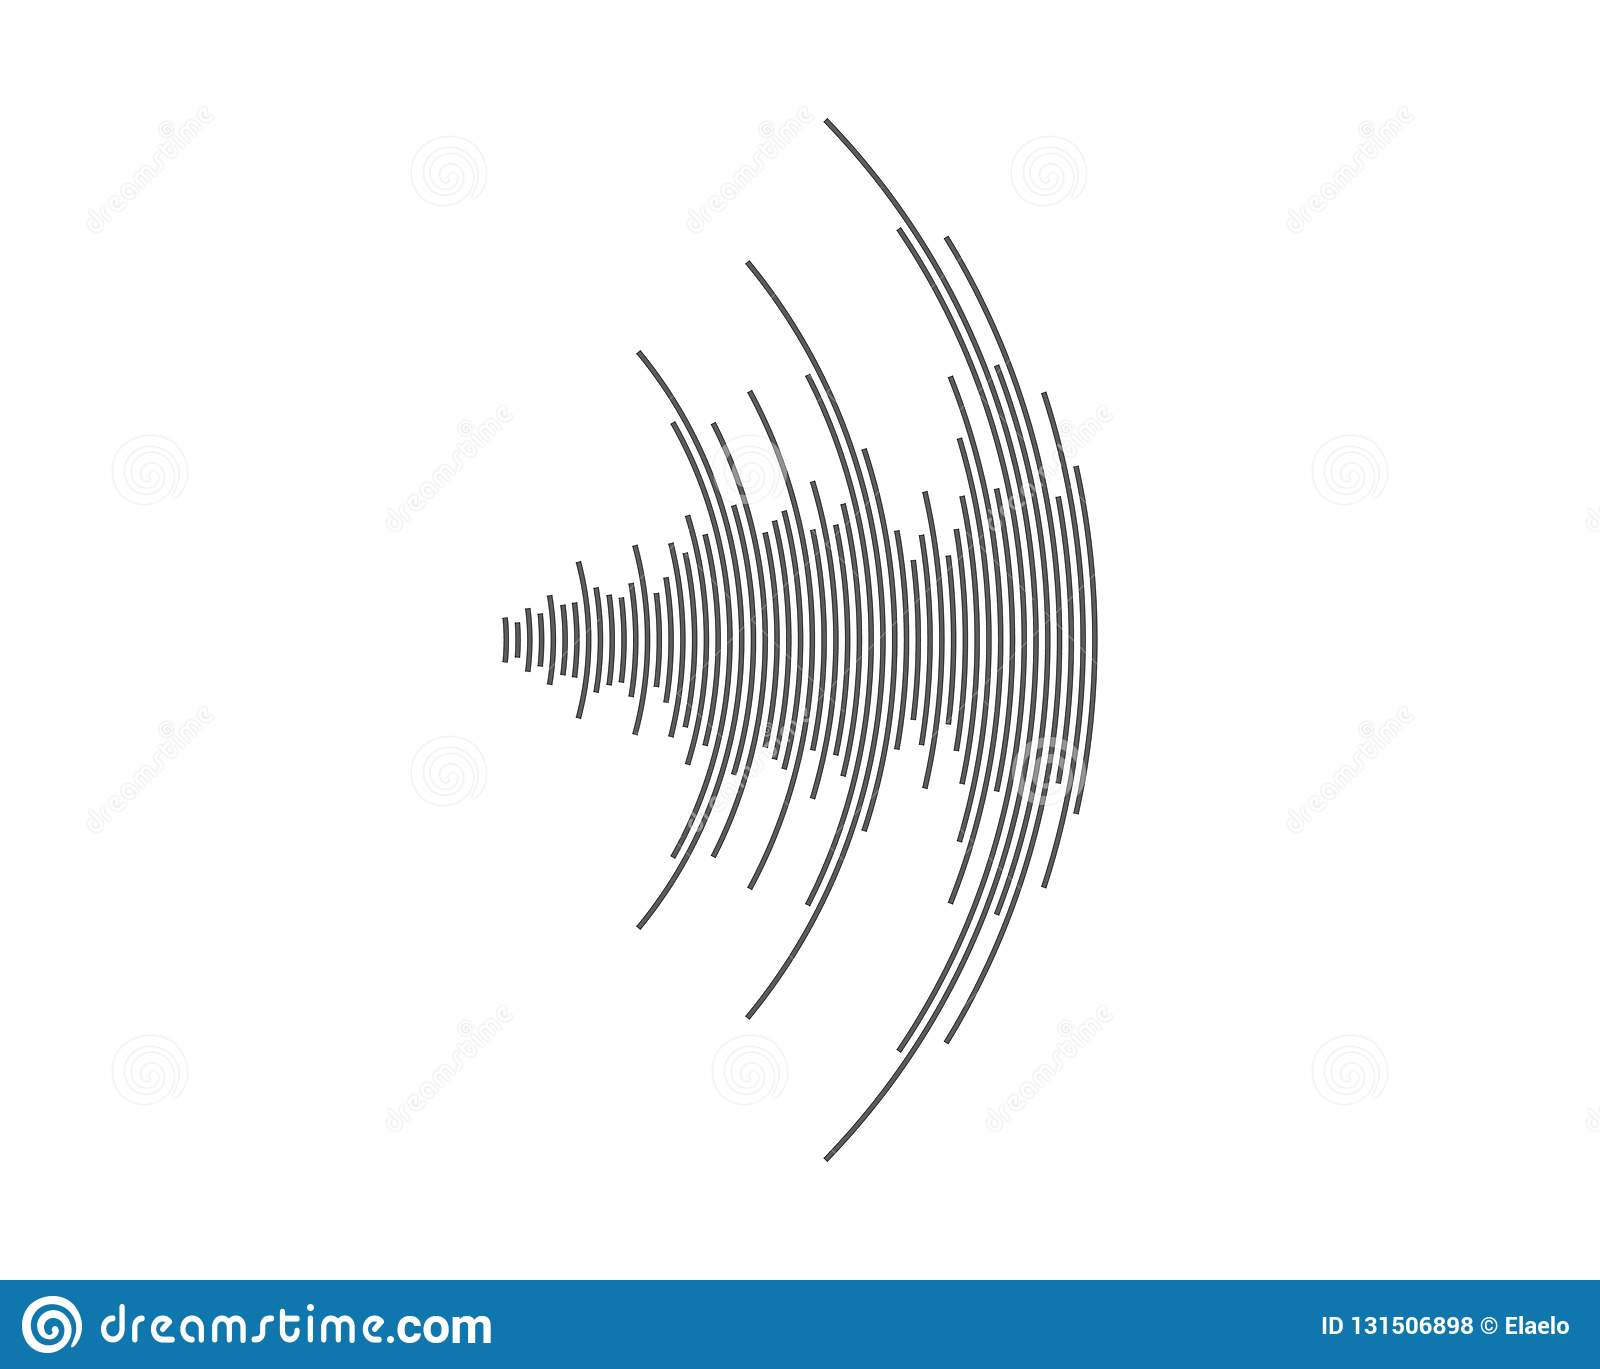 Sound Waves Illustration Design Template Stock Vector